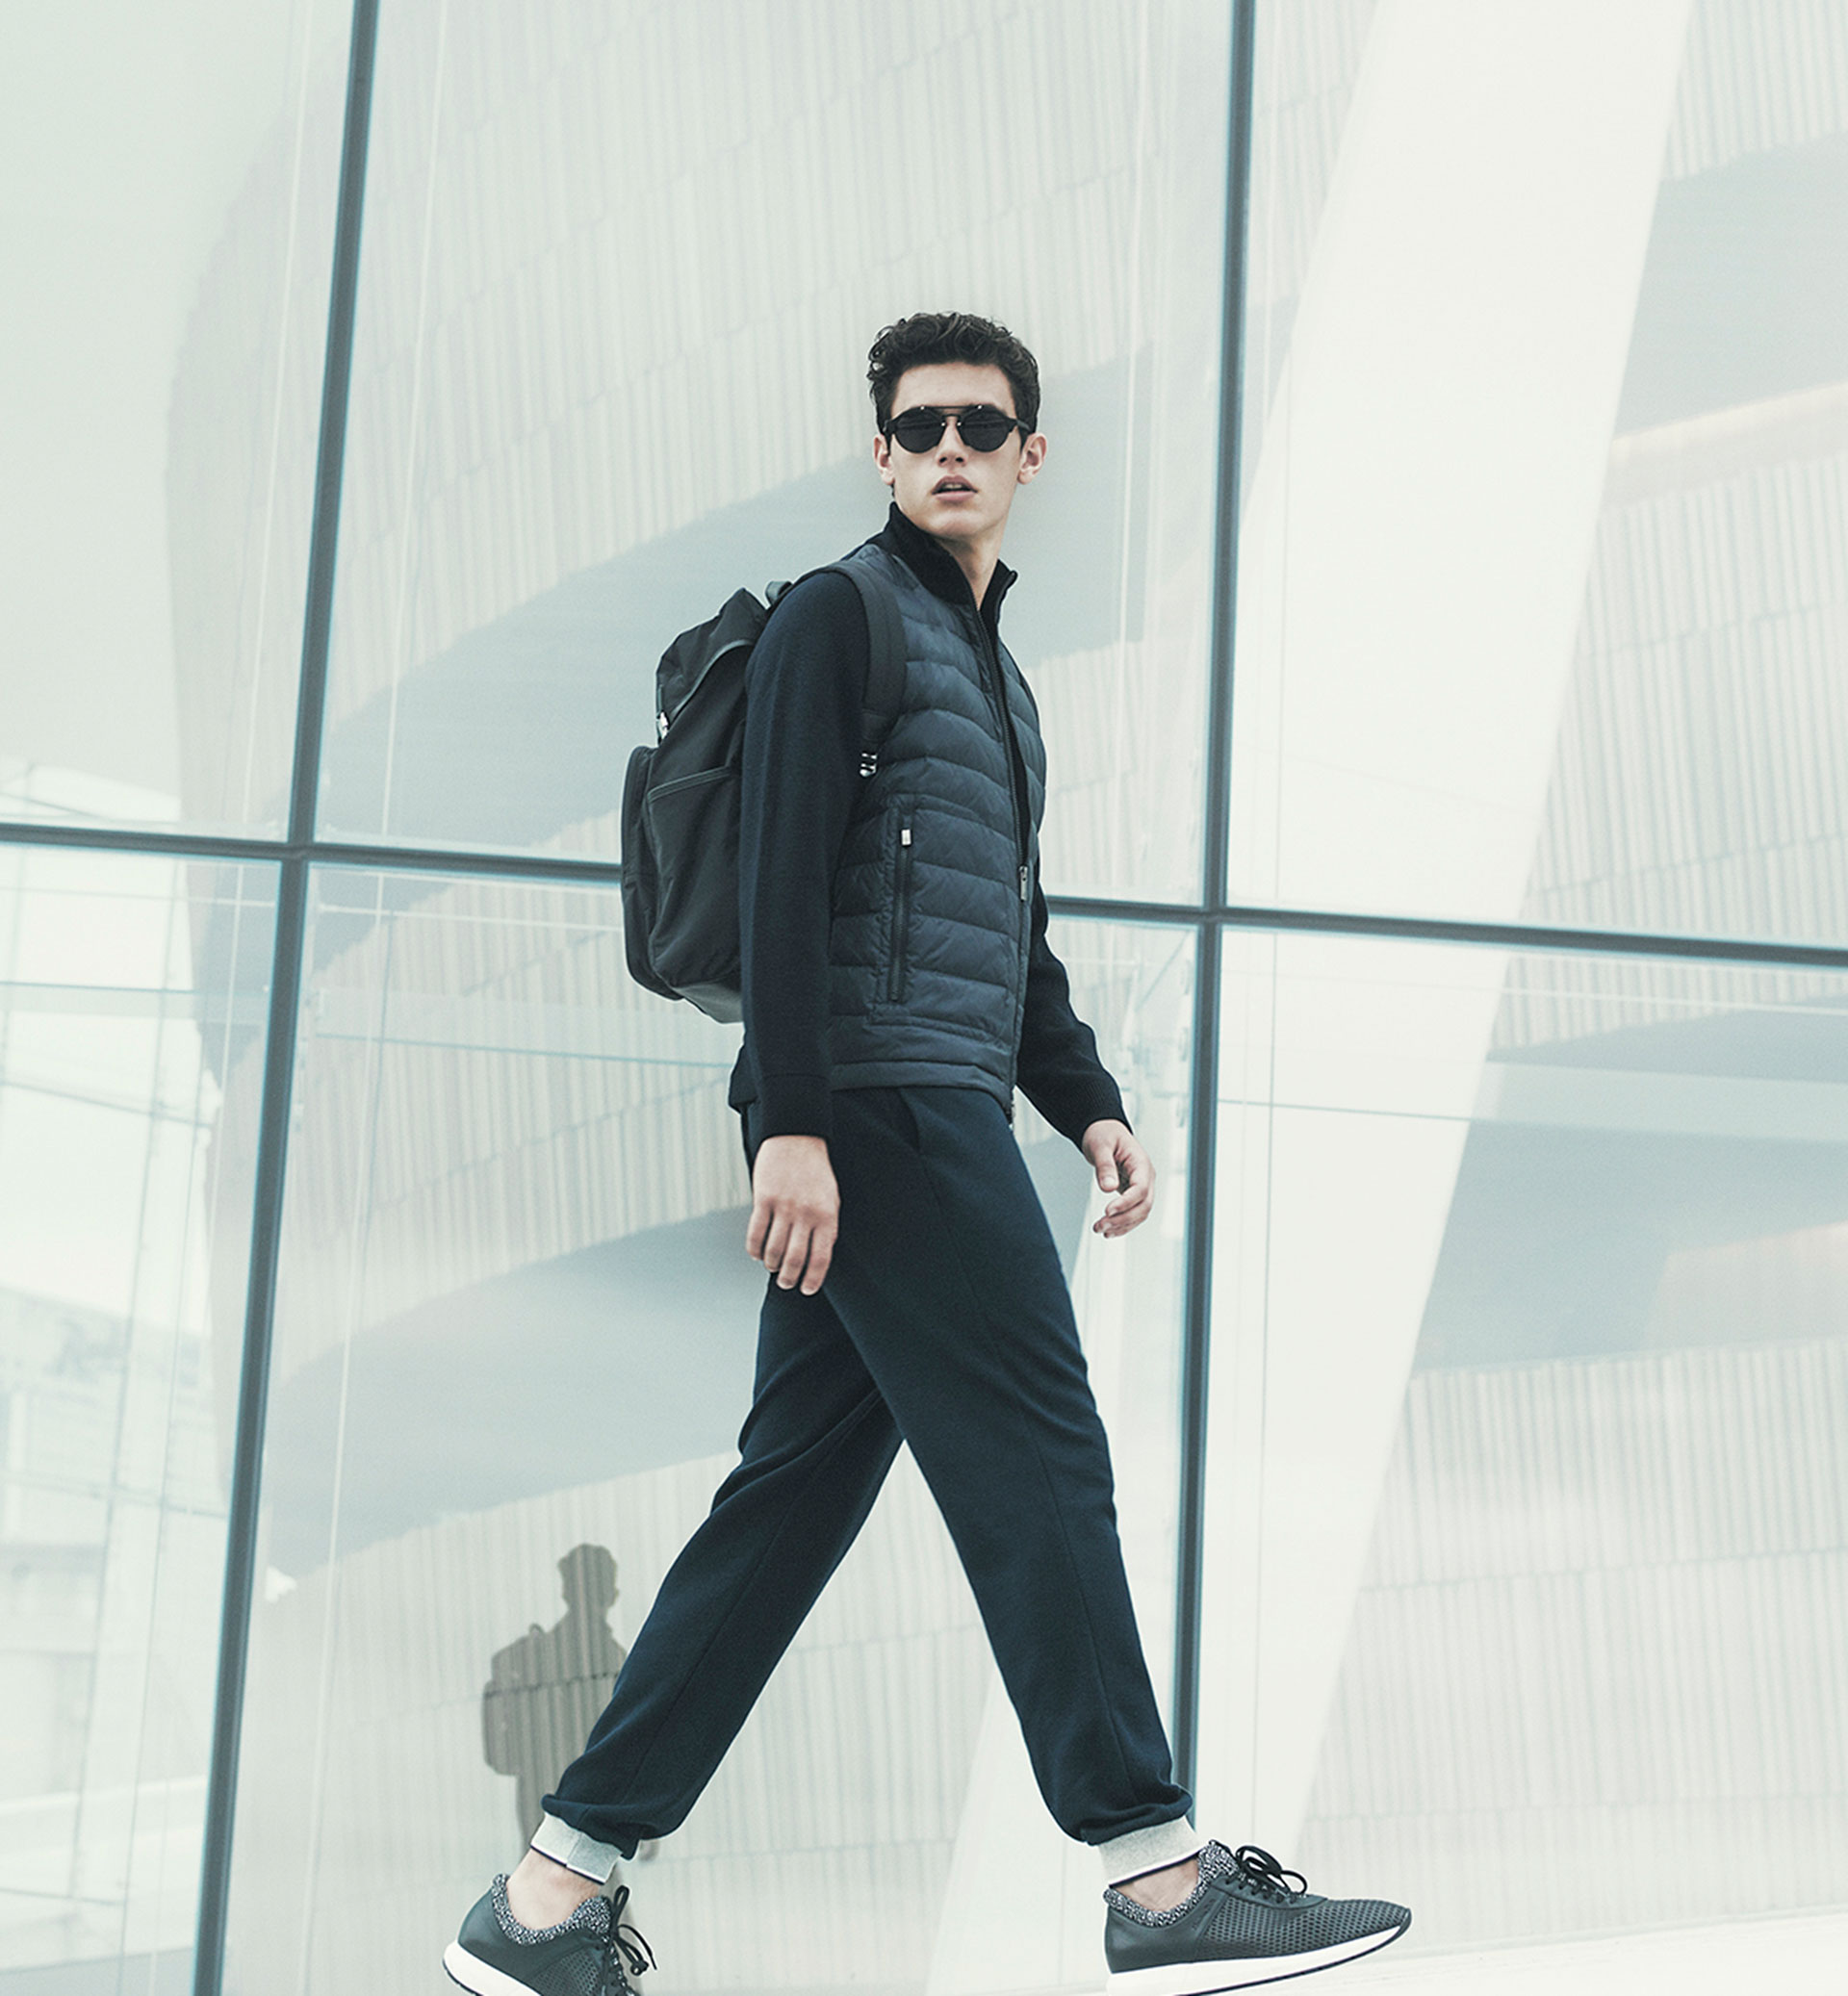 Soft merino cardigan with quilted detail , £109  Soft New York Skyline t-shirt , £19.95  Soft trousers with a contrasting hem detail , £54.95  Soft Saffiano backpack , £79.95  Soft openwork leather sneakers , £79.95  Soft polarised sunglasses , £64.95